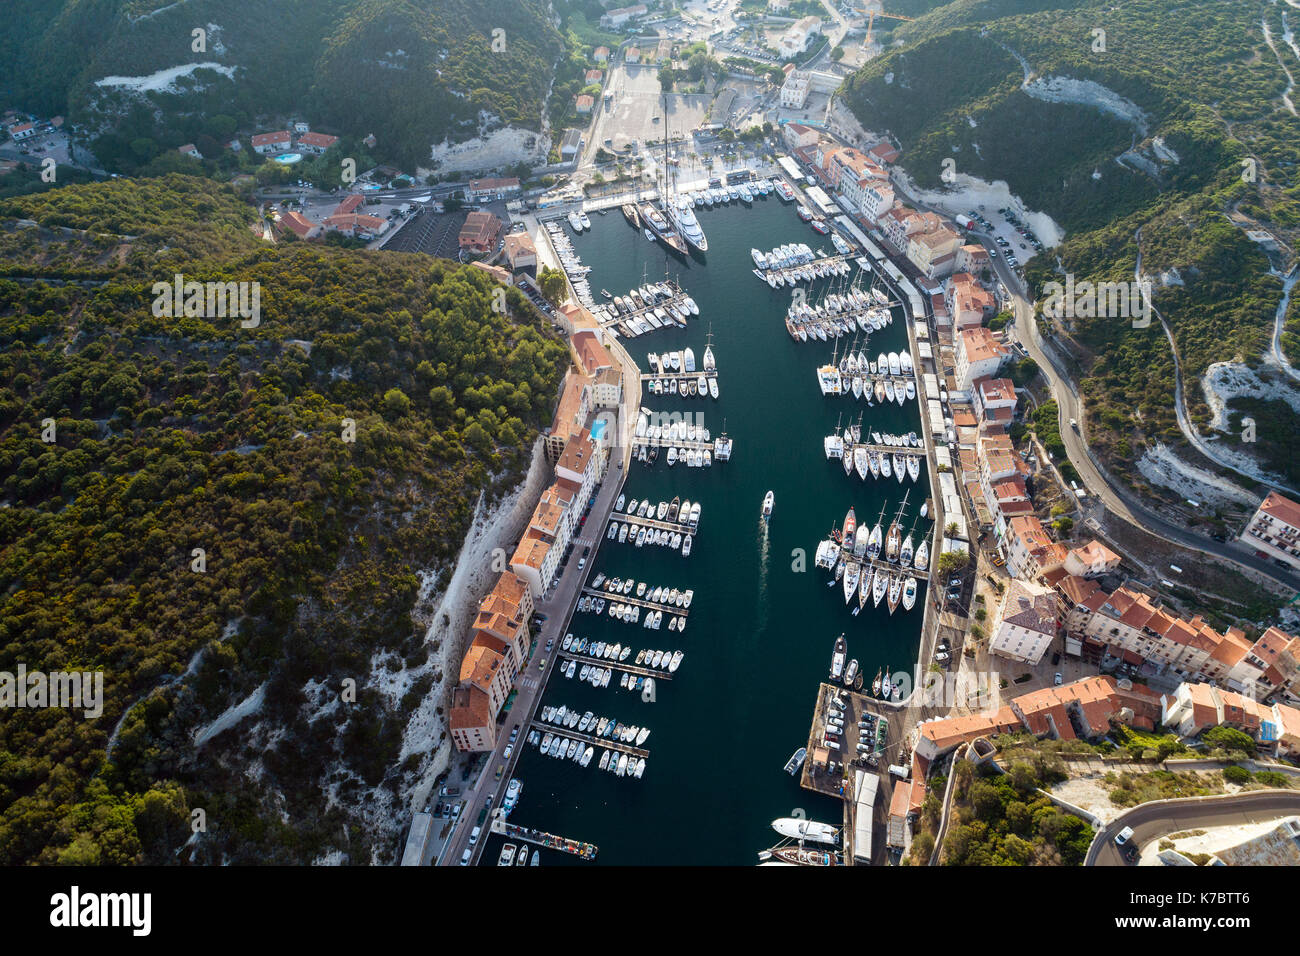 Aerial view of boats and yachts in marina of Bonifacio, Corsica, France - Stock Image